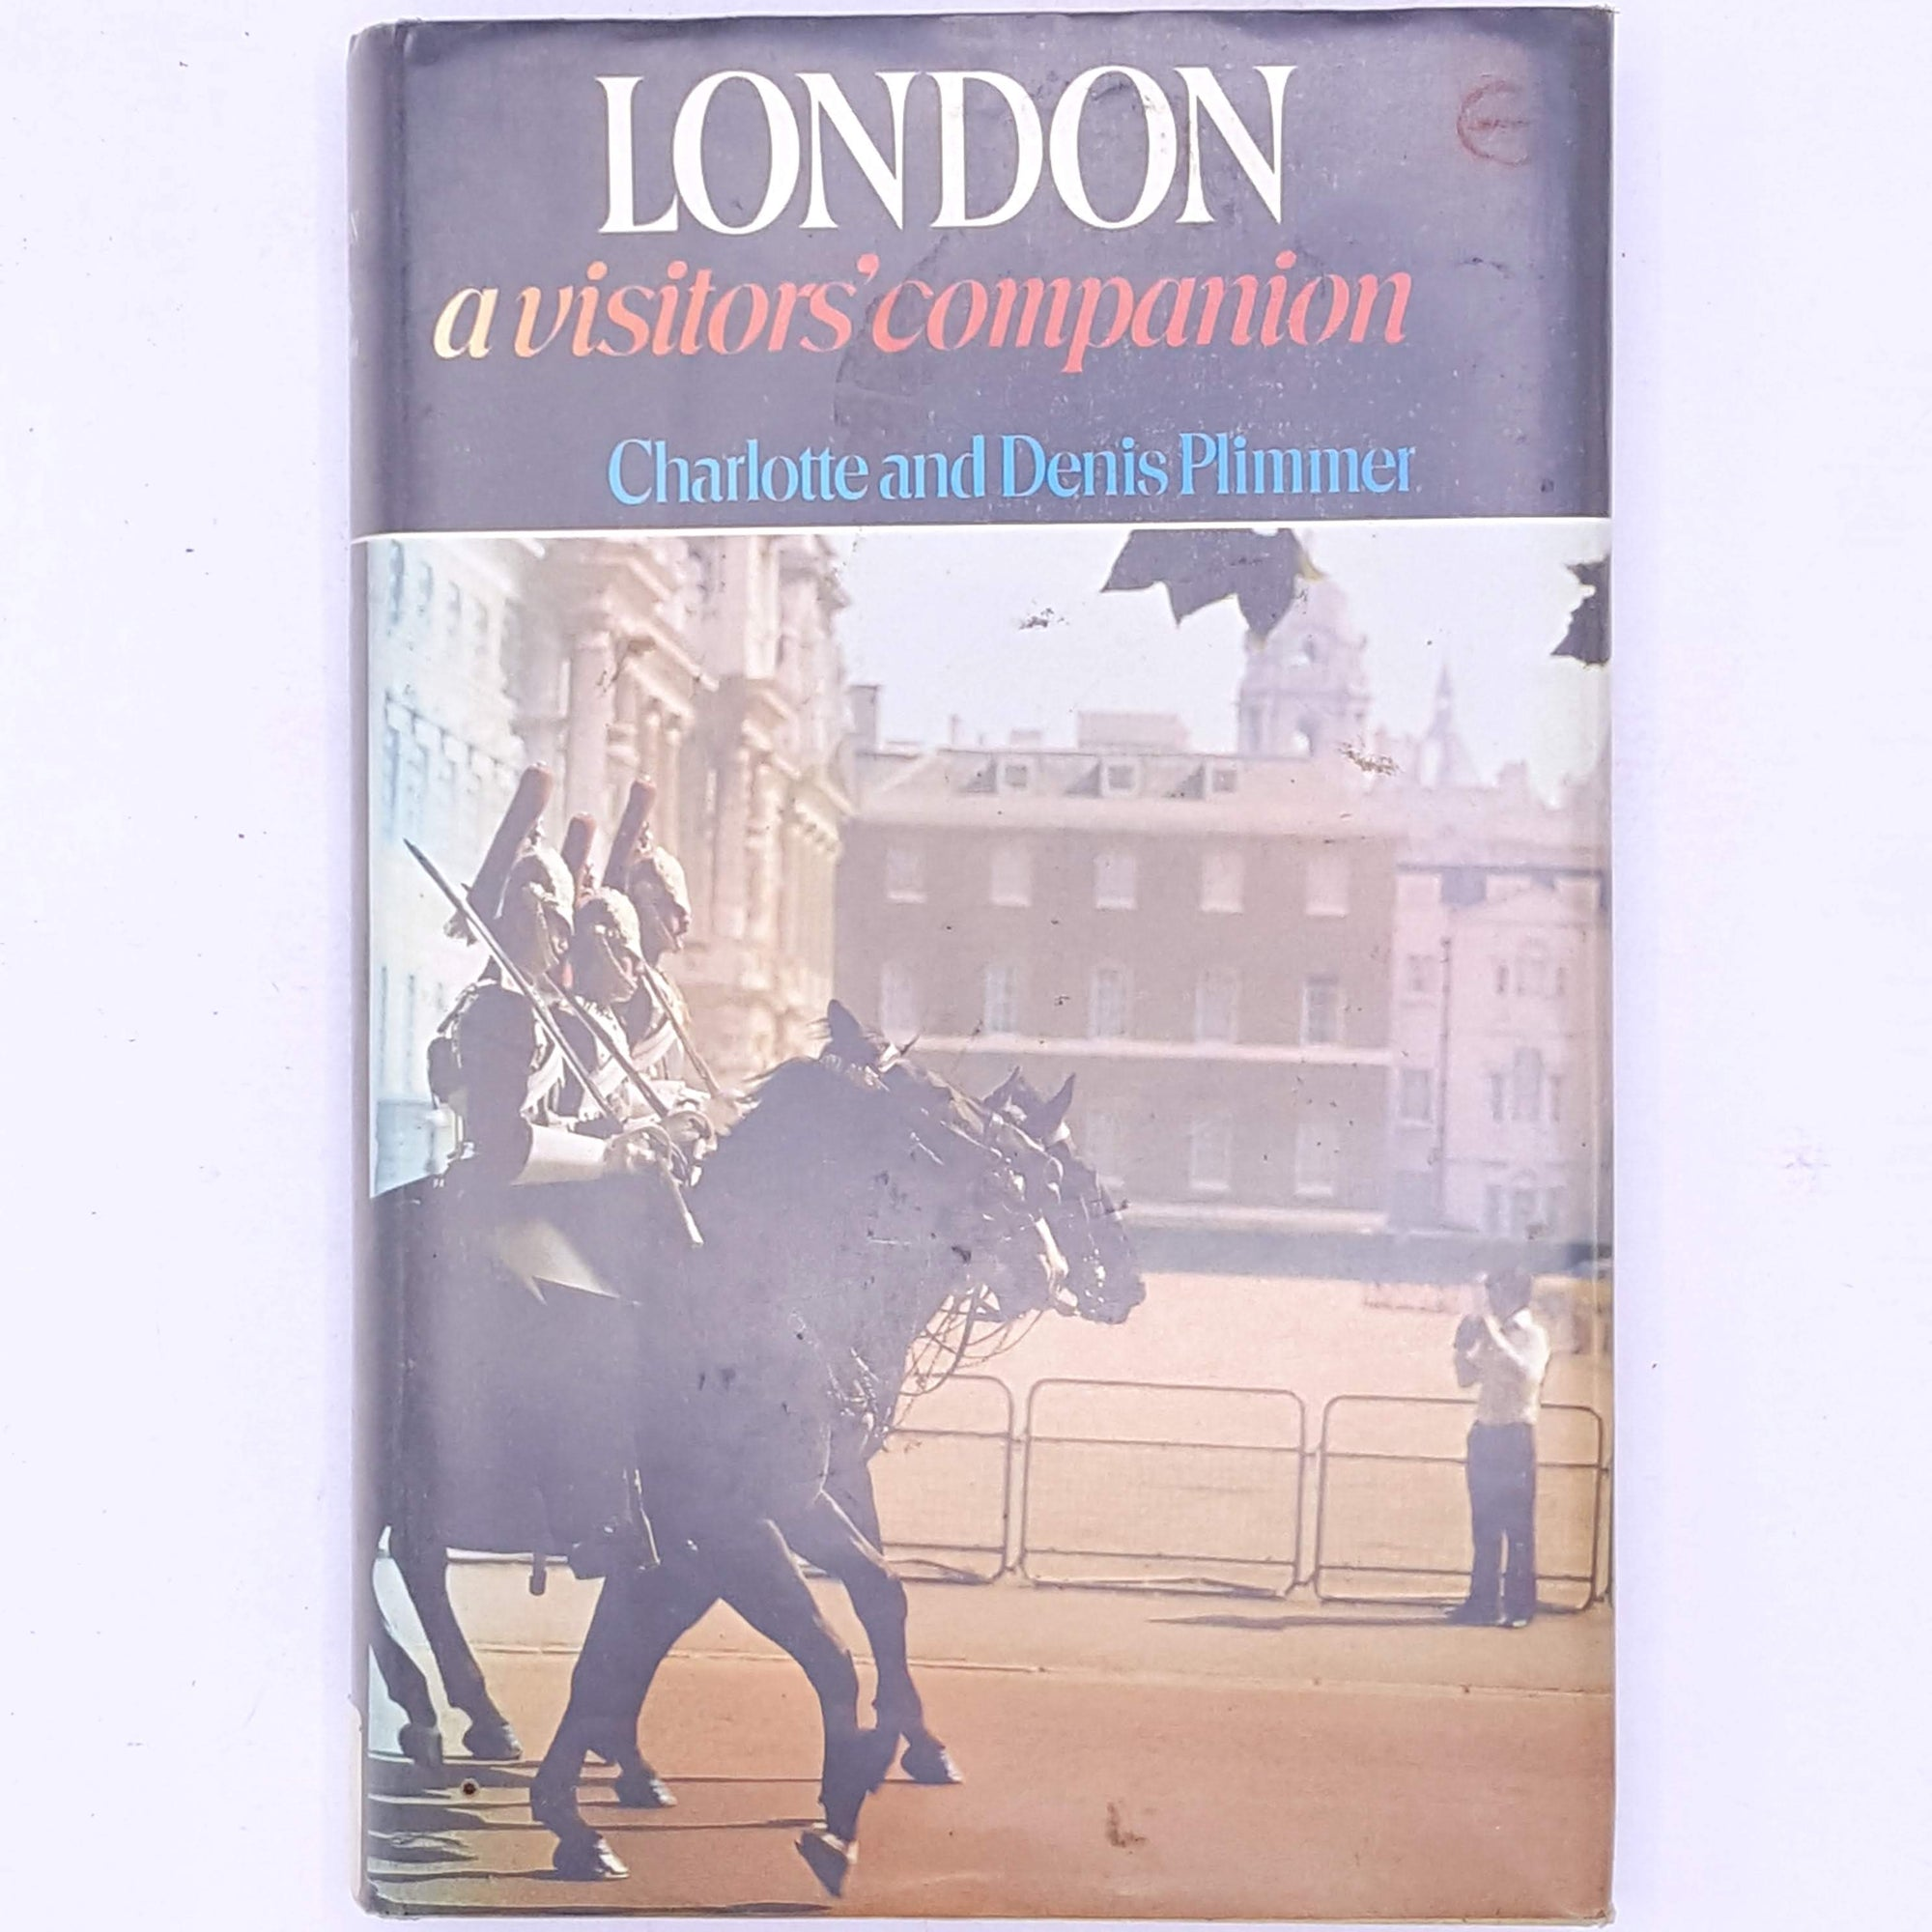 London a visitors' companion by Charlotte & Denis Plimmer